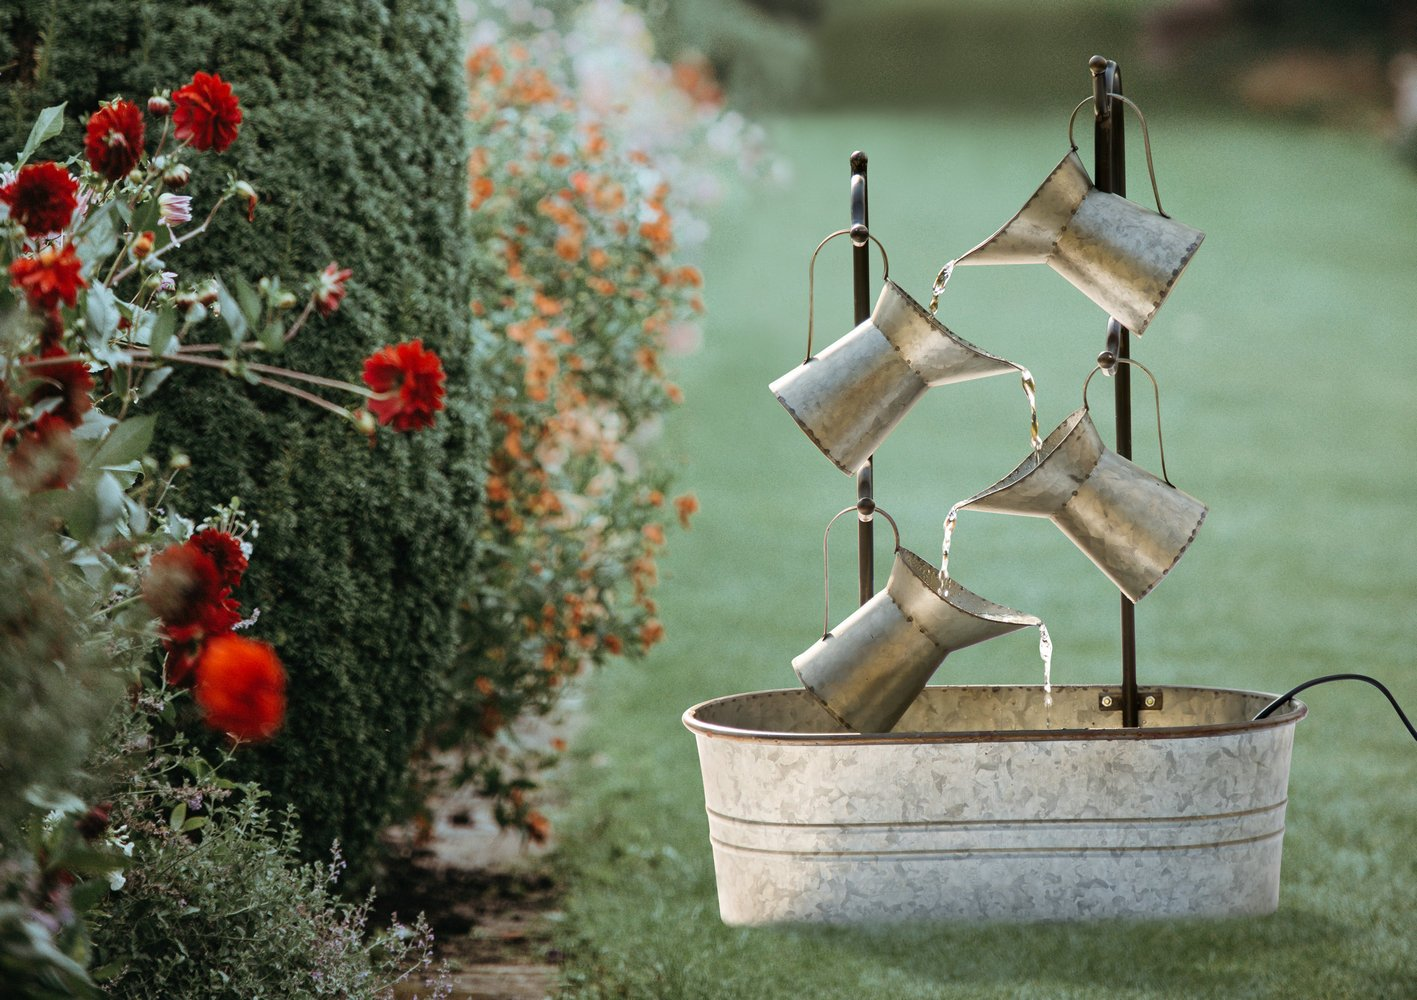 Amazon.com: Glitzhome Metal Tiered Water Fountain with Decorative ...